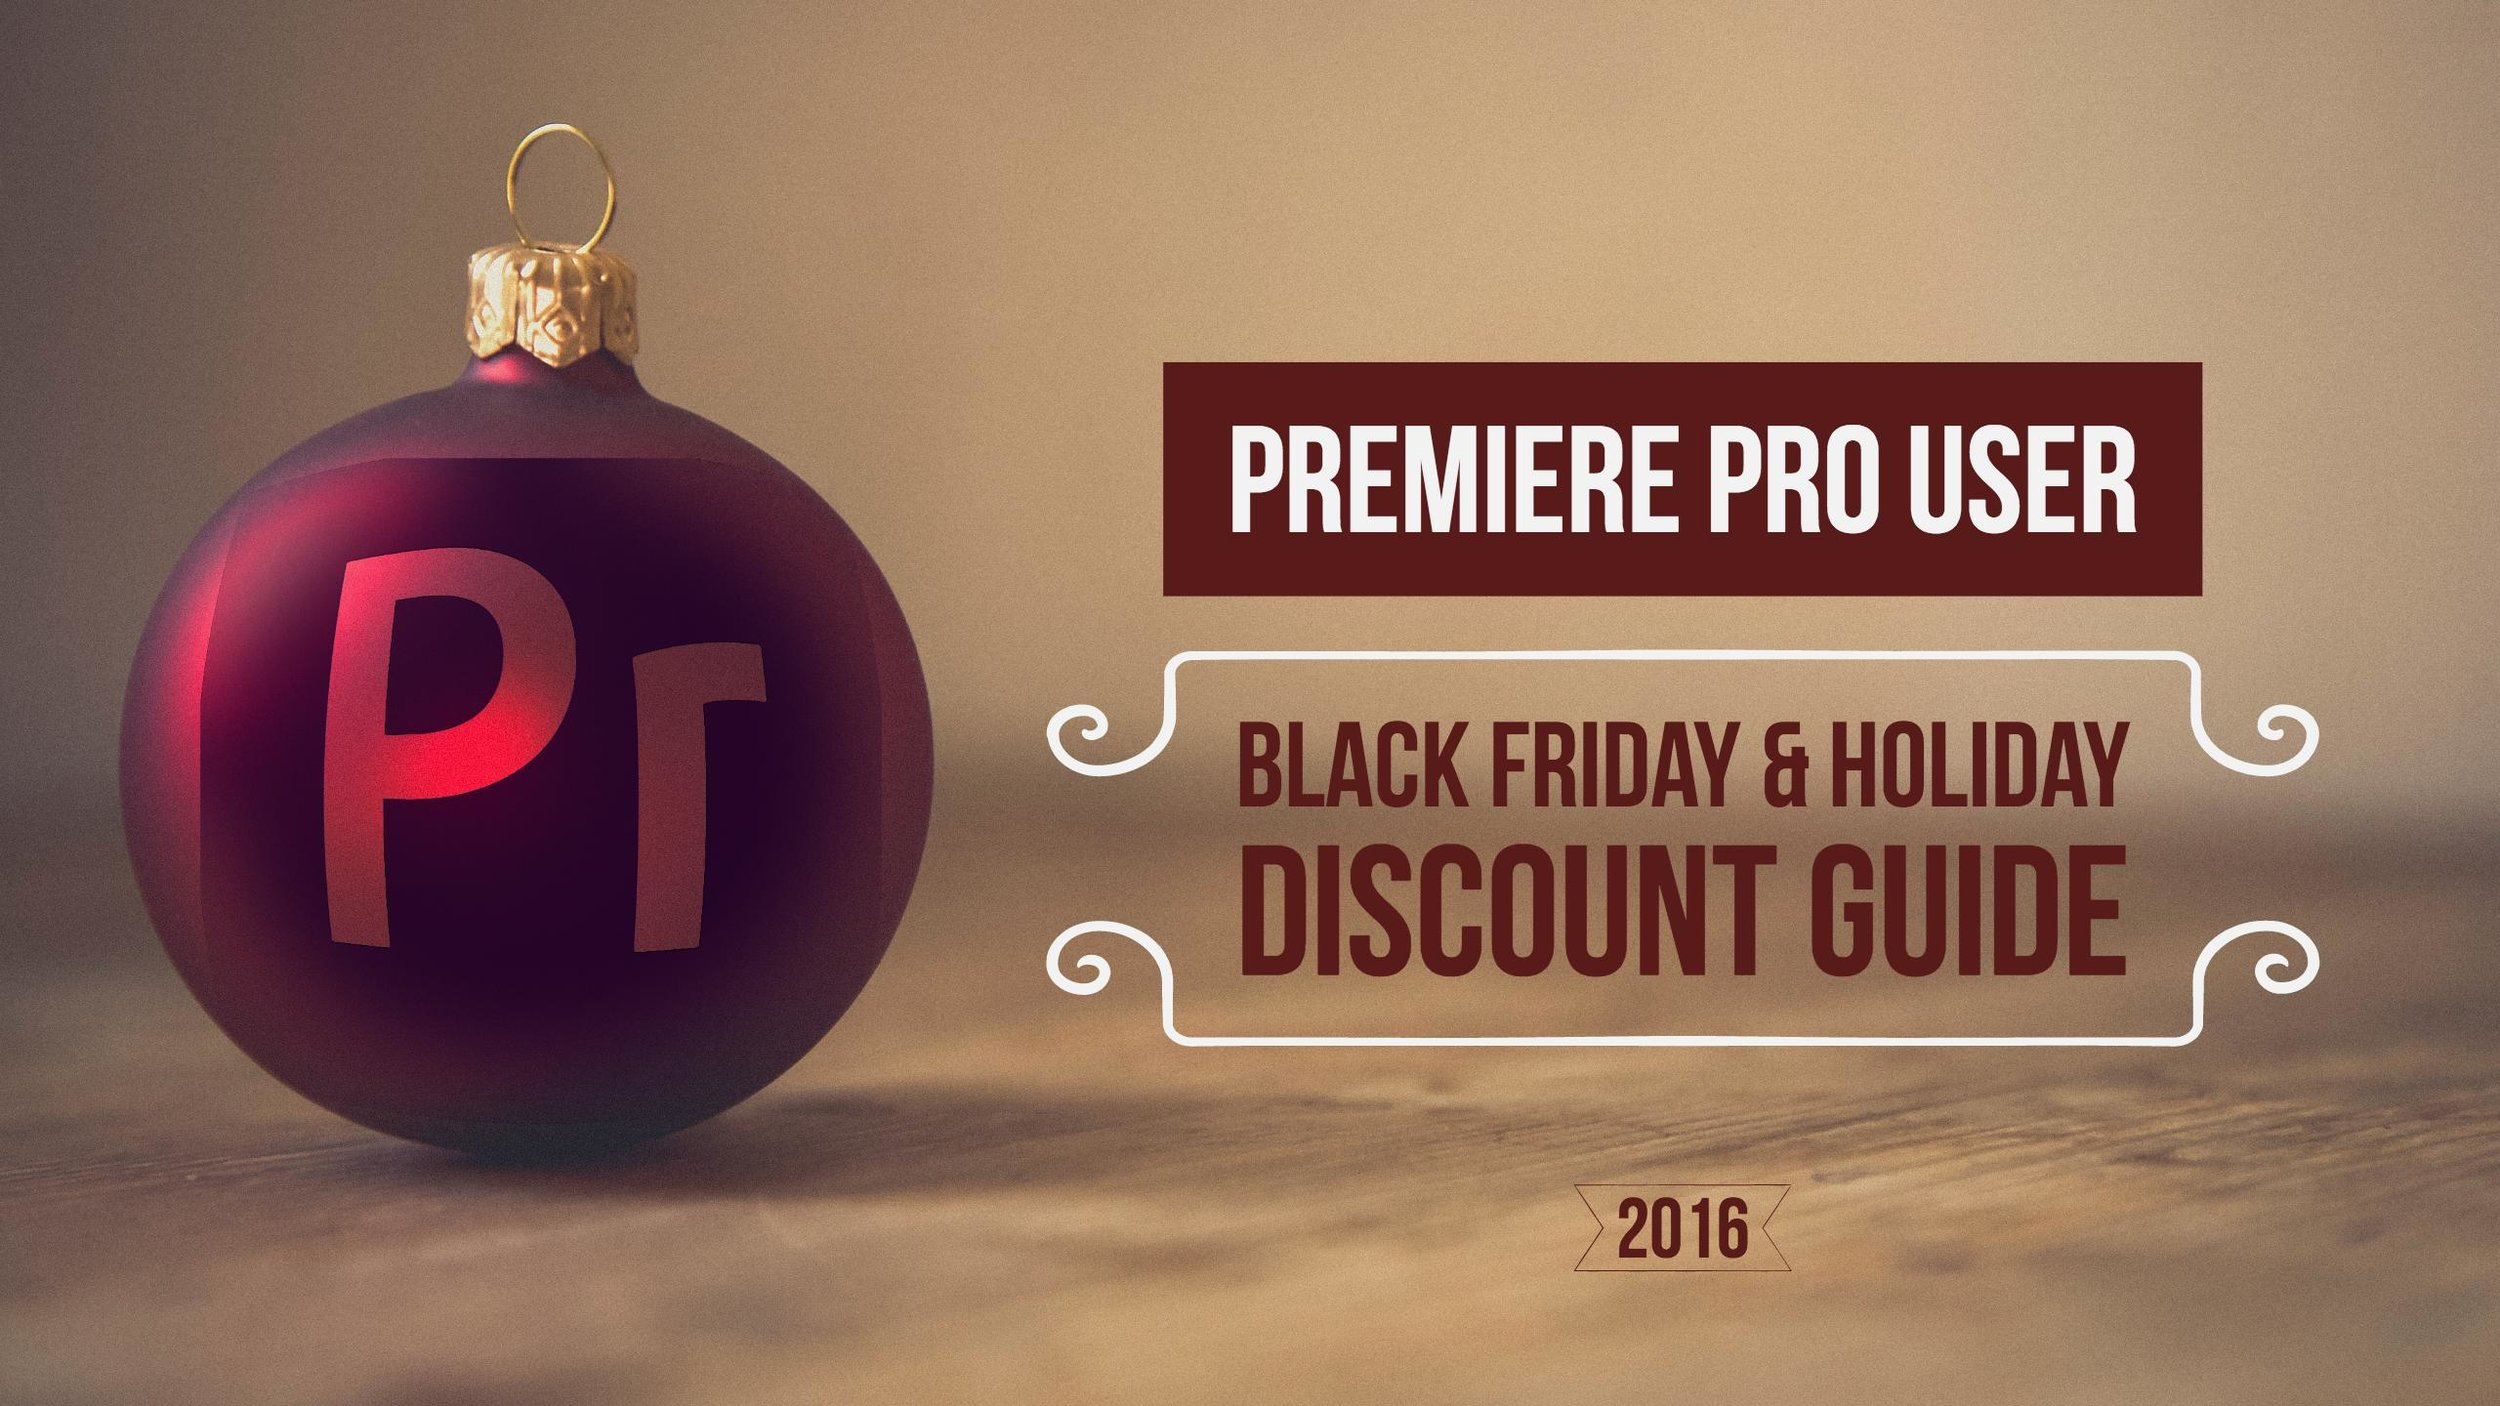 premiere-pro-user-black-friday-holiday-discount-guide-2016.jpeg